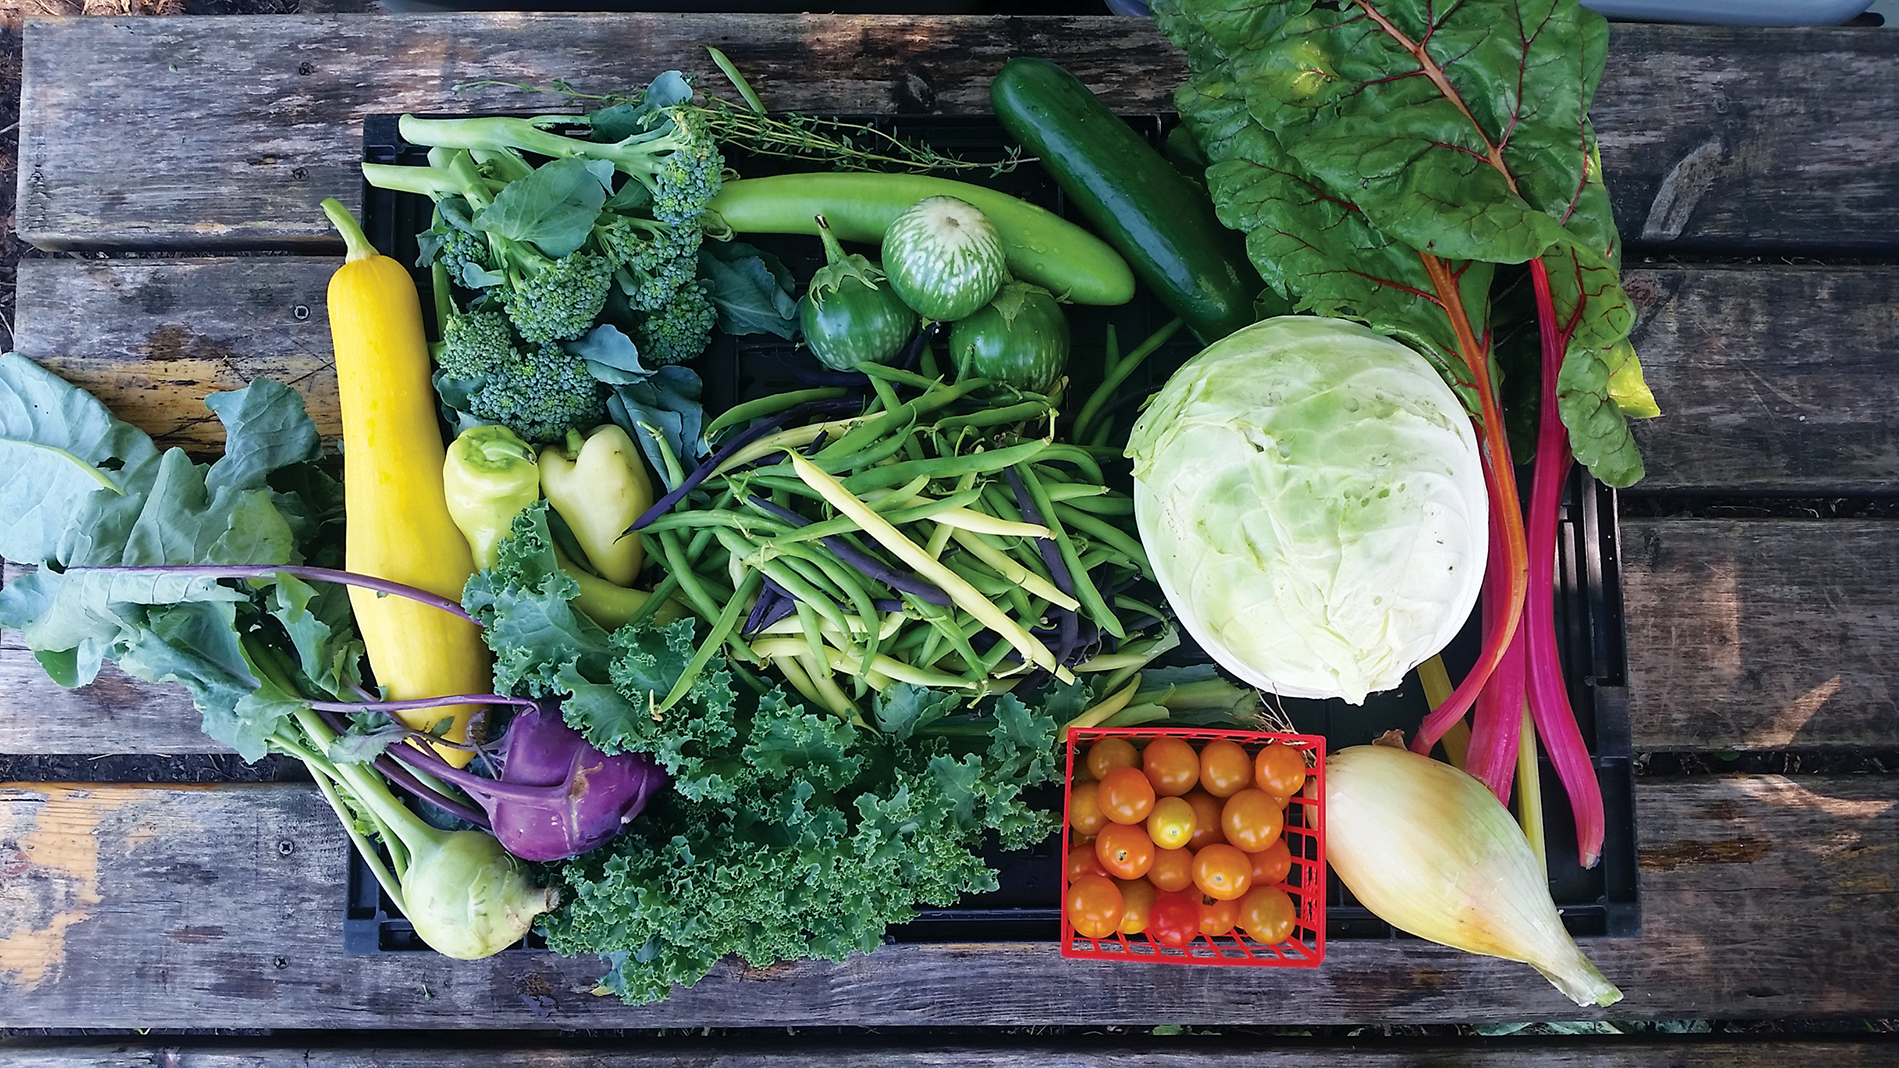 An Open Farms CSA box with a selection of produce from Open Arms of Minnesota's Twin Cities-based urban farms